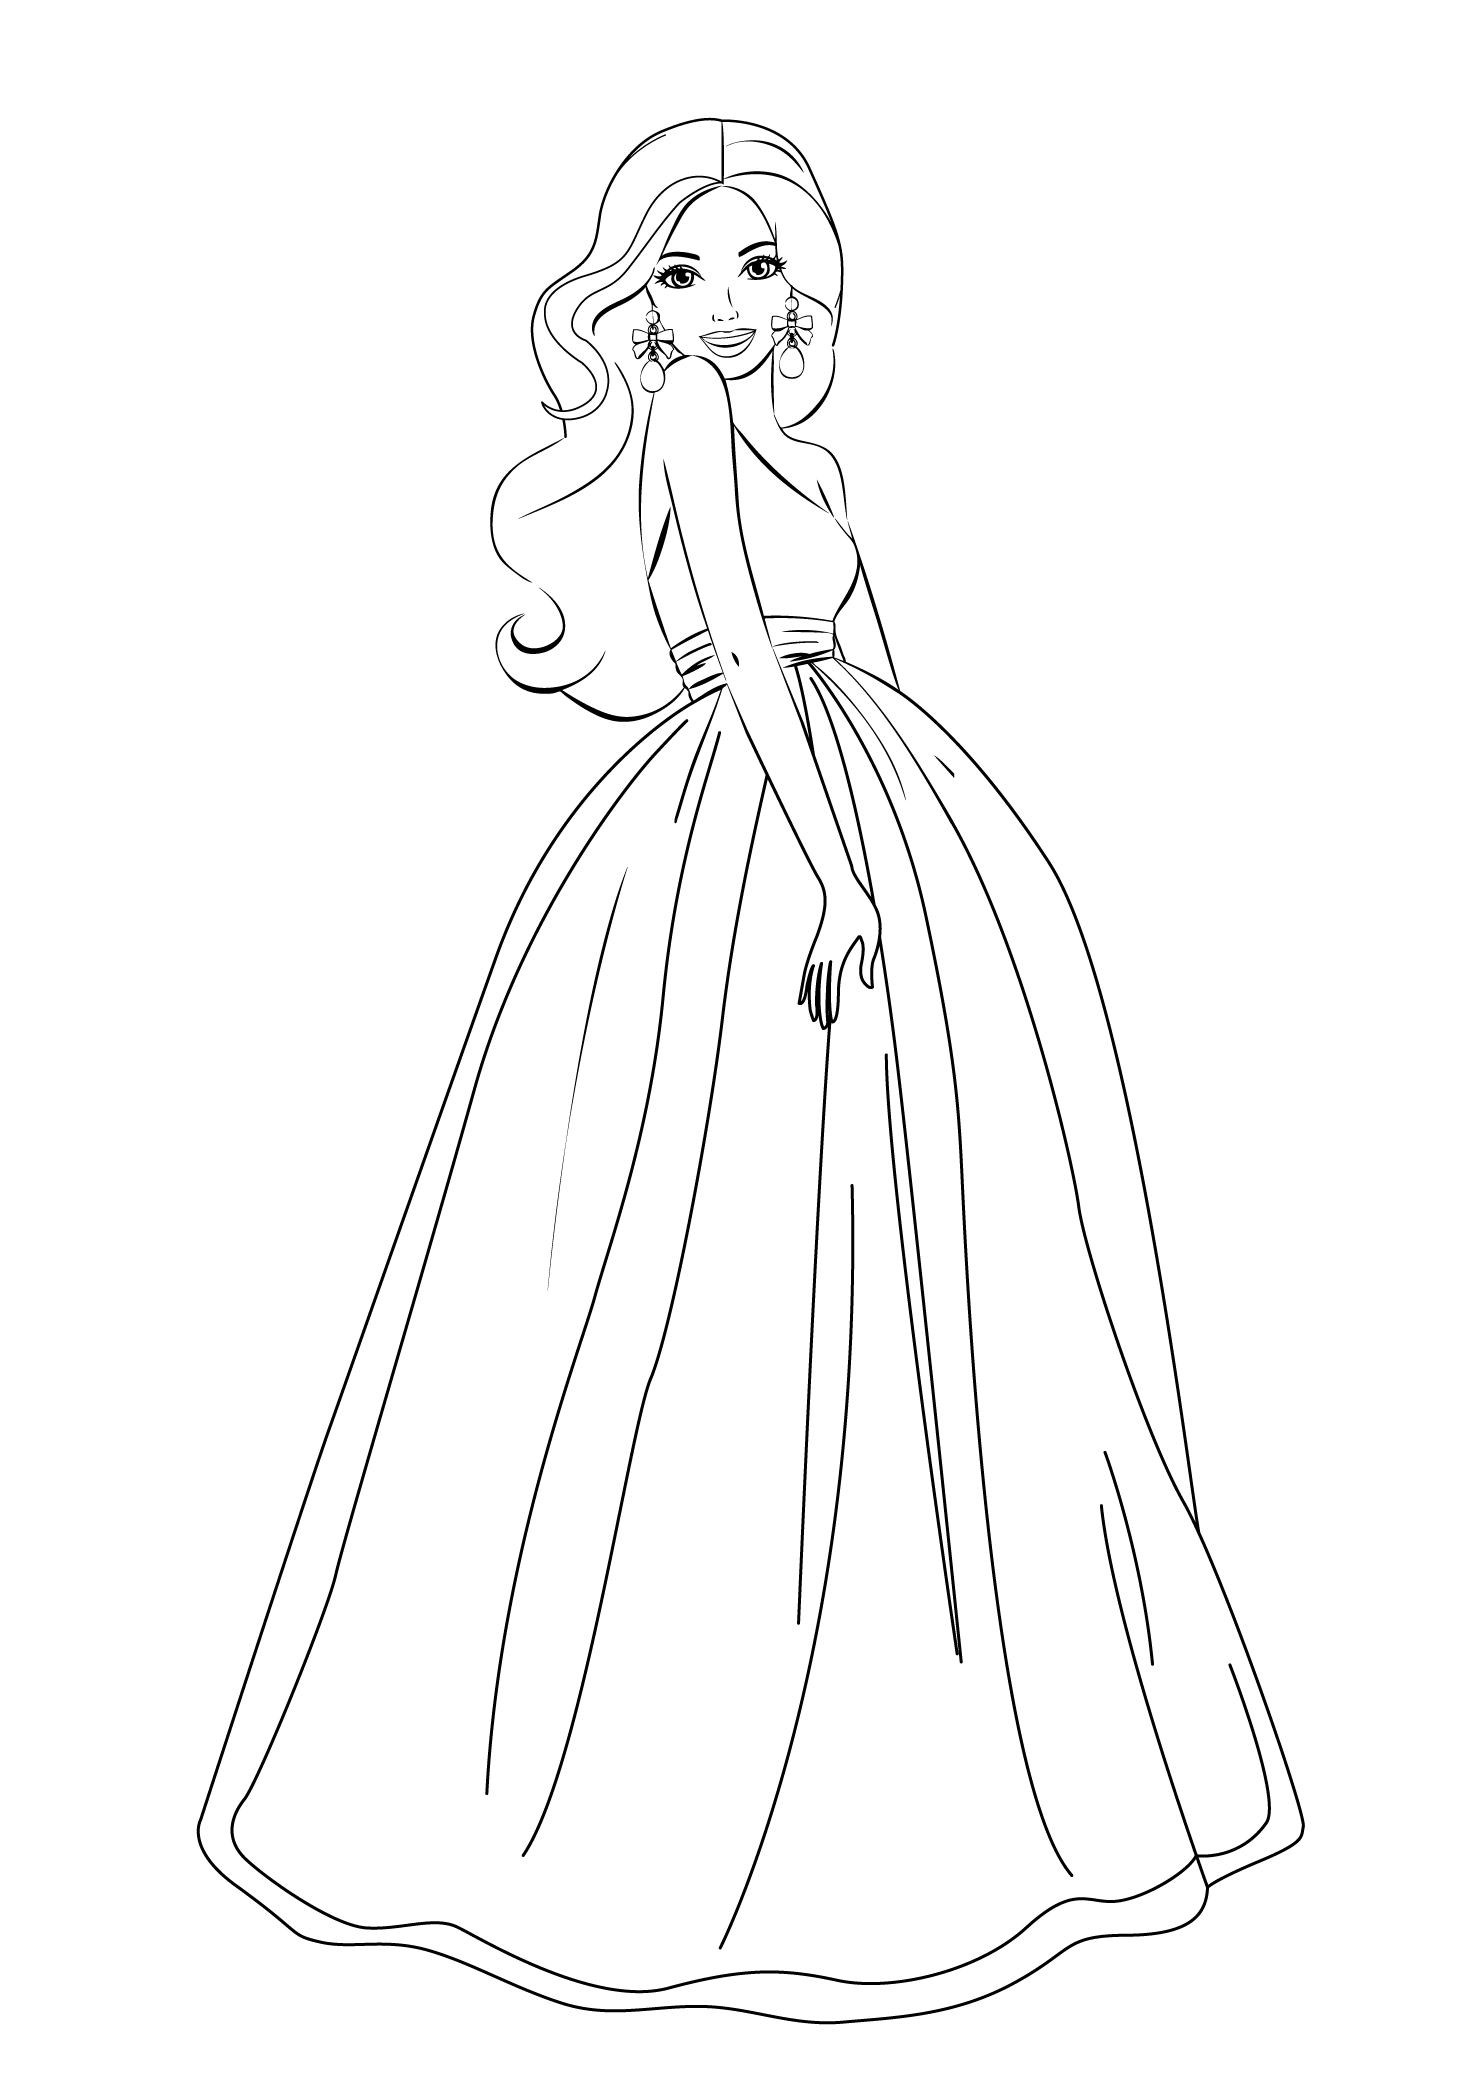 Barbie princess coloring pages to print - Barbie Coloring Pages For Girls Free Printable